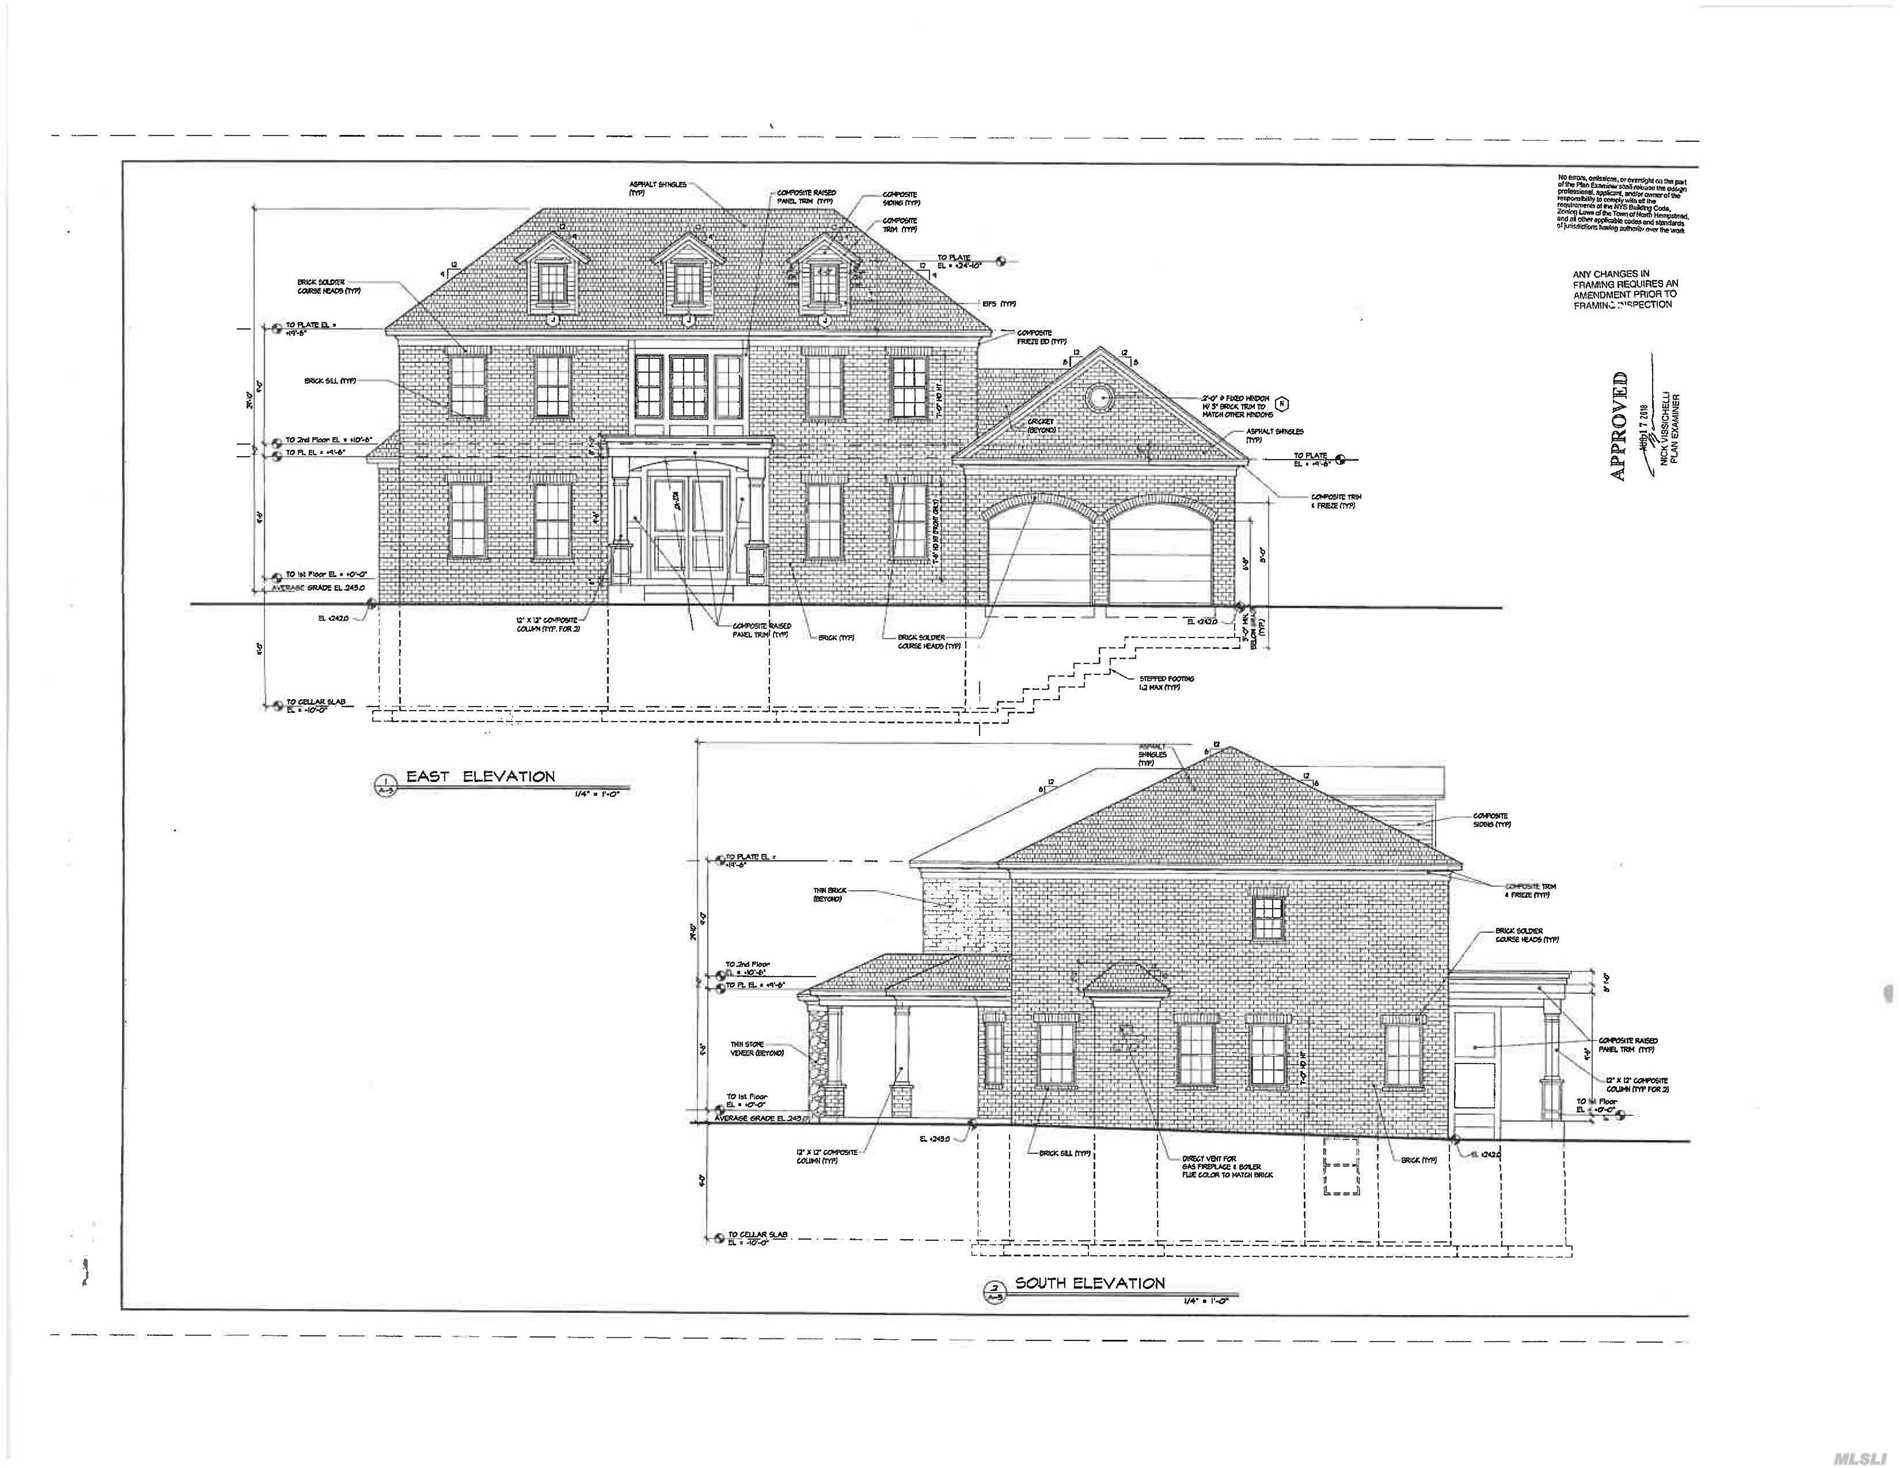 Rare Opportunity To Work With The Builder On Selecting Interior Finishes On Stately Brick Center Hall Colonial With Spacious Entertaining Rooms,  Master Suite With Walk In Spacious Walk In Closet And Soon To Be Spa Like Master Bath, Stunning Outdoor Patio,  This Is An Opportunity Not To Be Missed In Creating Your Dream Home. Completion In Late Spring 2019 . 4000 Sq Ft Plus Finished Lower , Second Laundry Room, Radiant Heat, Pre Wired Audio/Surround & More.